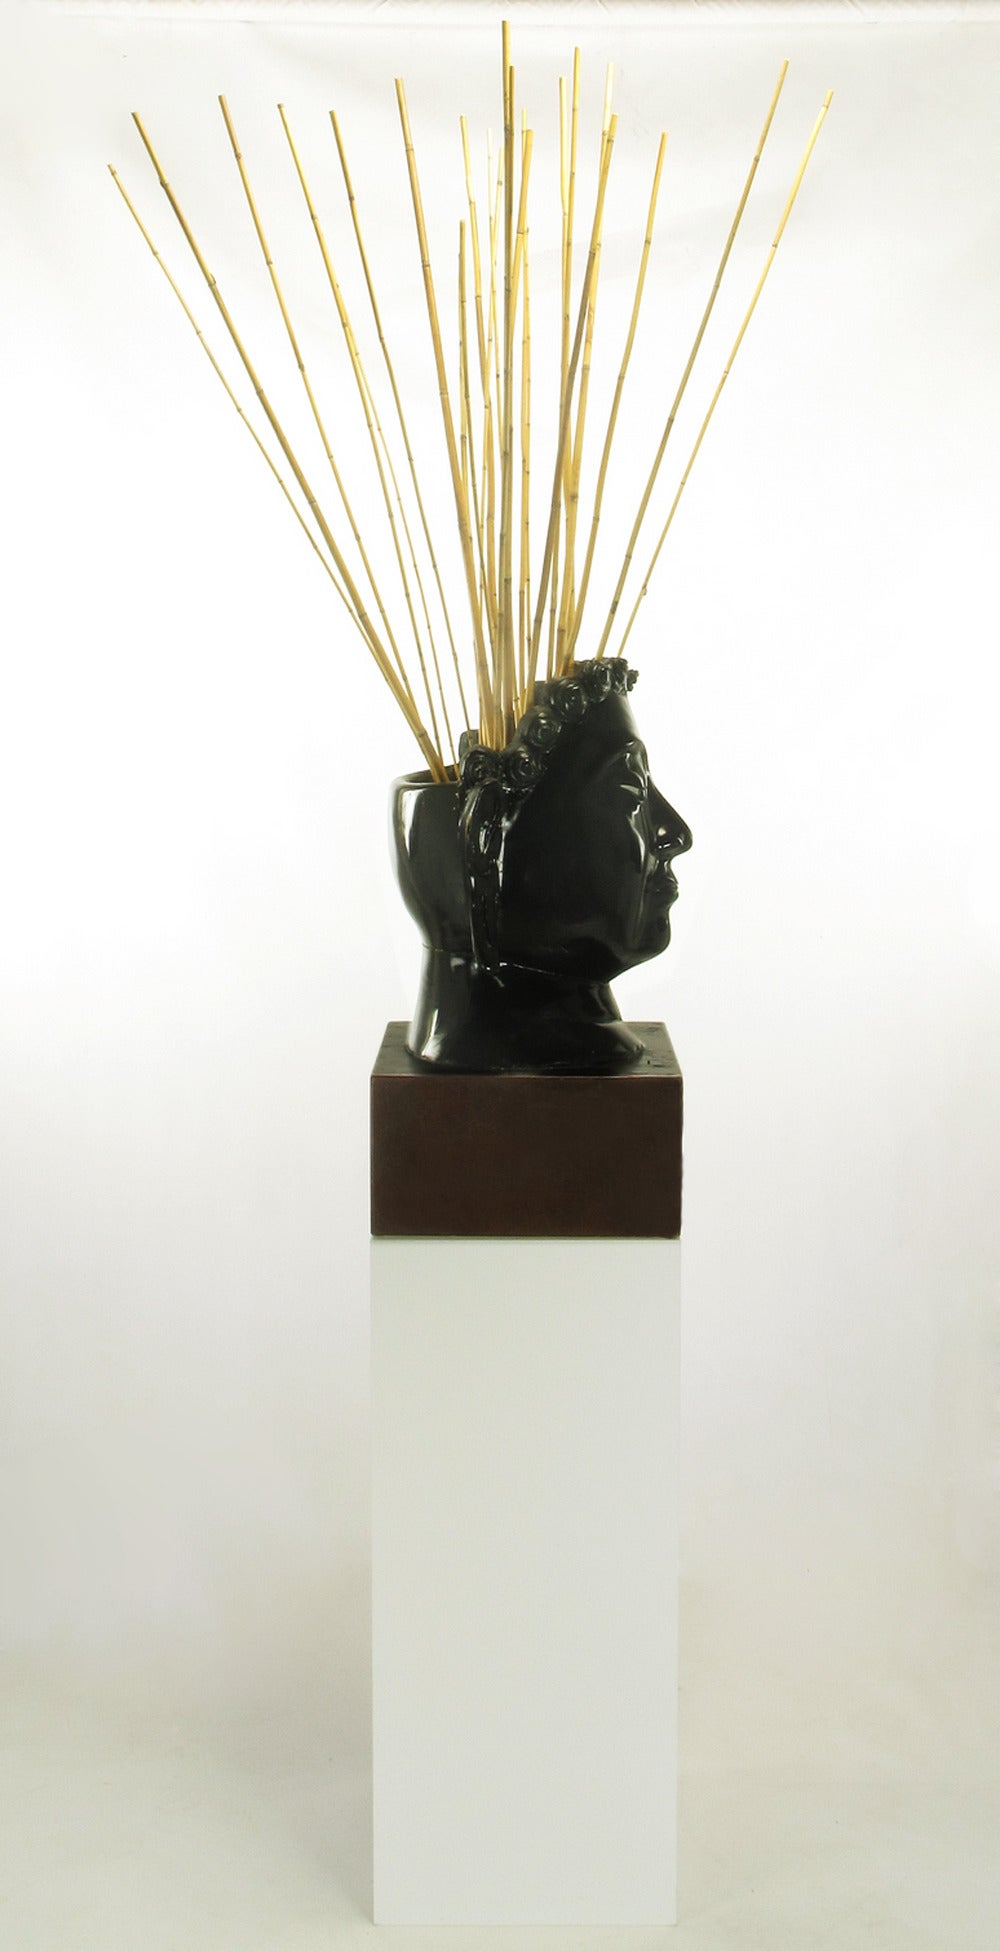 Buddha-Form Mahogany and Black Lacquer Sculpture on White Lucite Pedestal For Sale 1